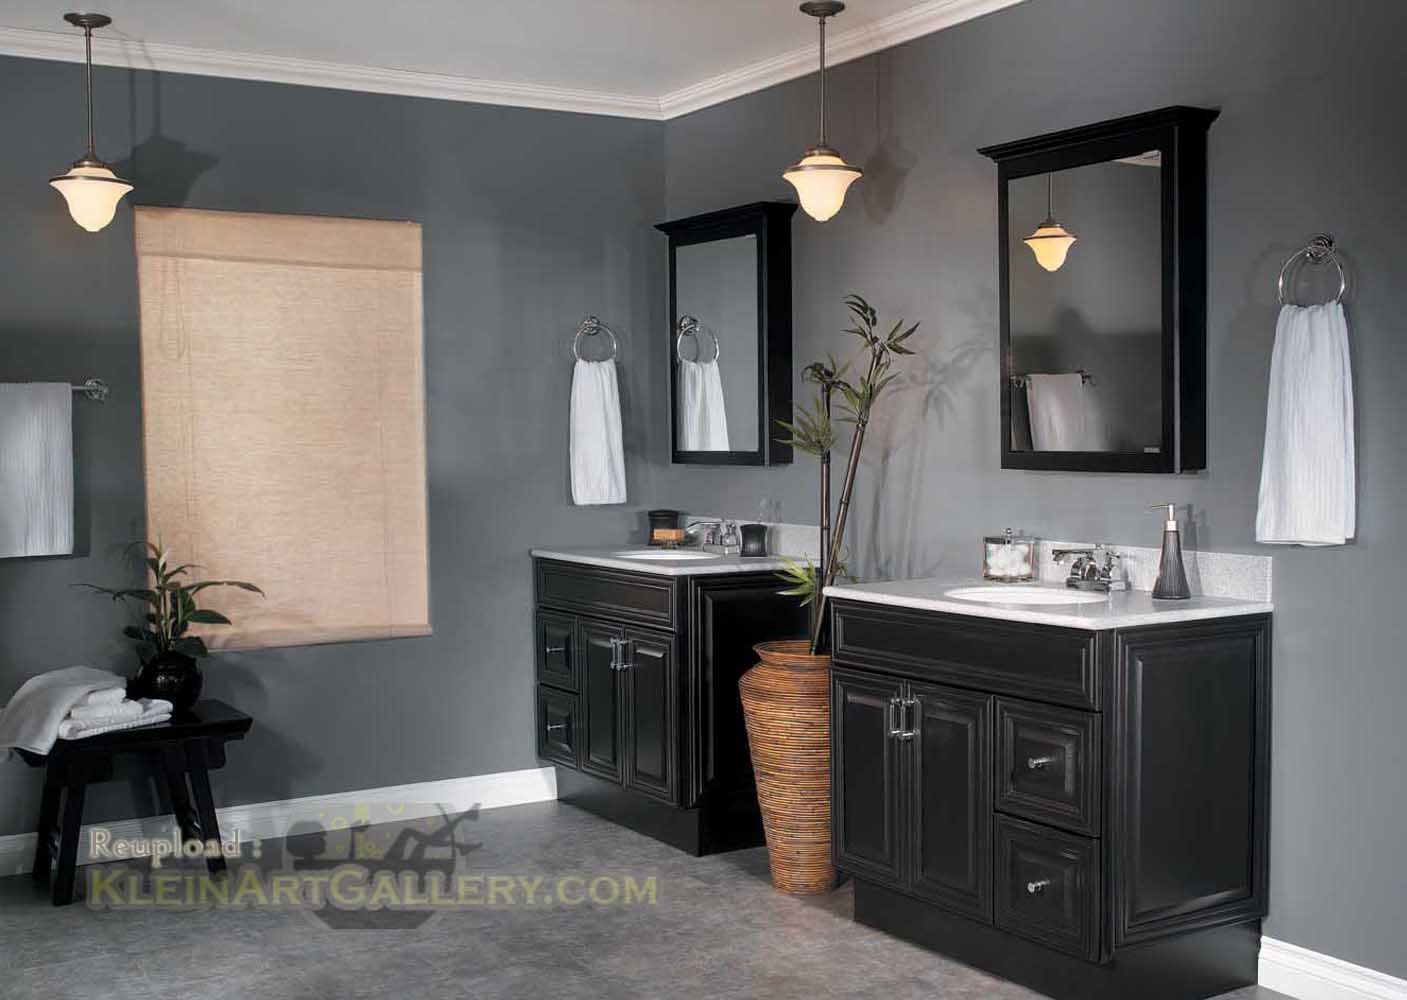 Bathroom Color Ideas With Dark Cabinets Bathroom Colors Black Cabinets Bathroom Bathroom Colors Gray